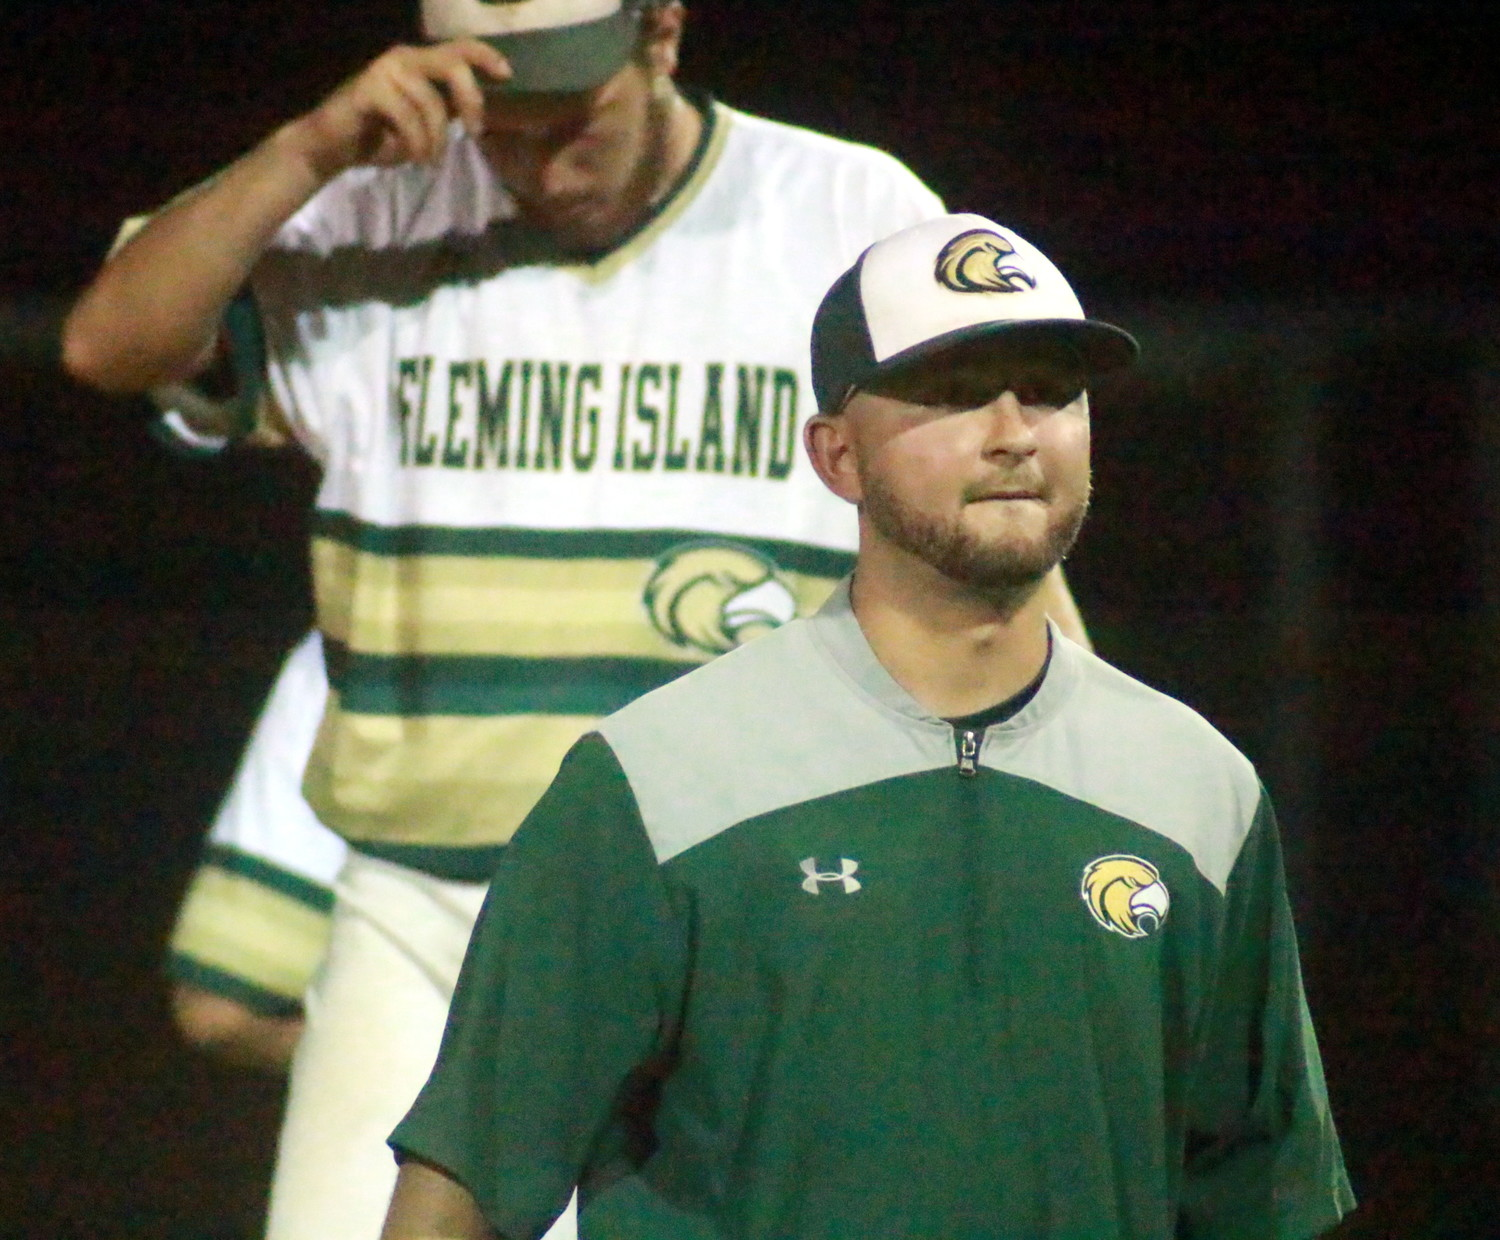 Fleming Island High baseball coach Grant Bigilin, front, got rugged play from senior pitcher Caleb Lanoux in the Golden Eagles region final playoff run this year.